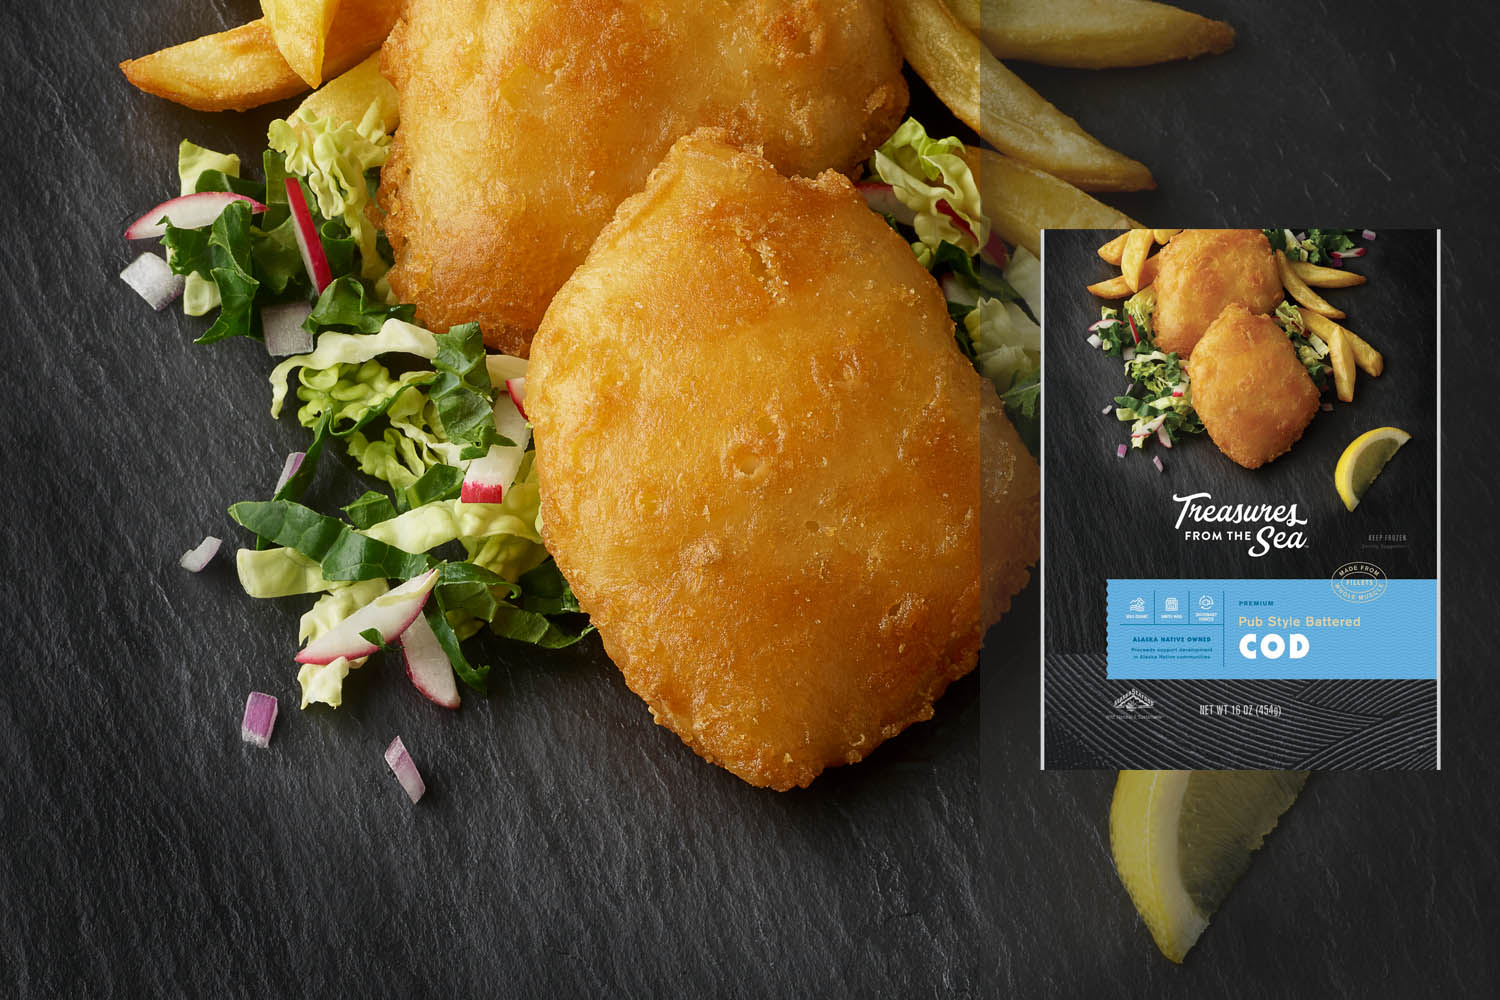 PUB STYLE BATTERED COD